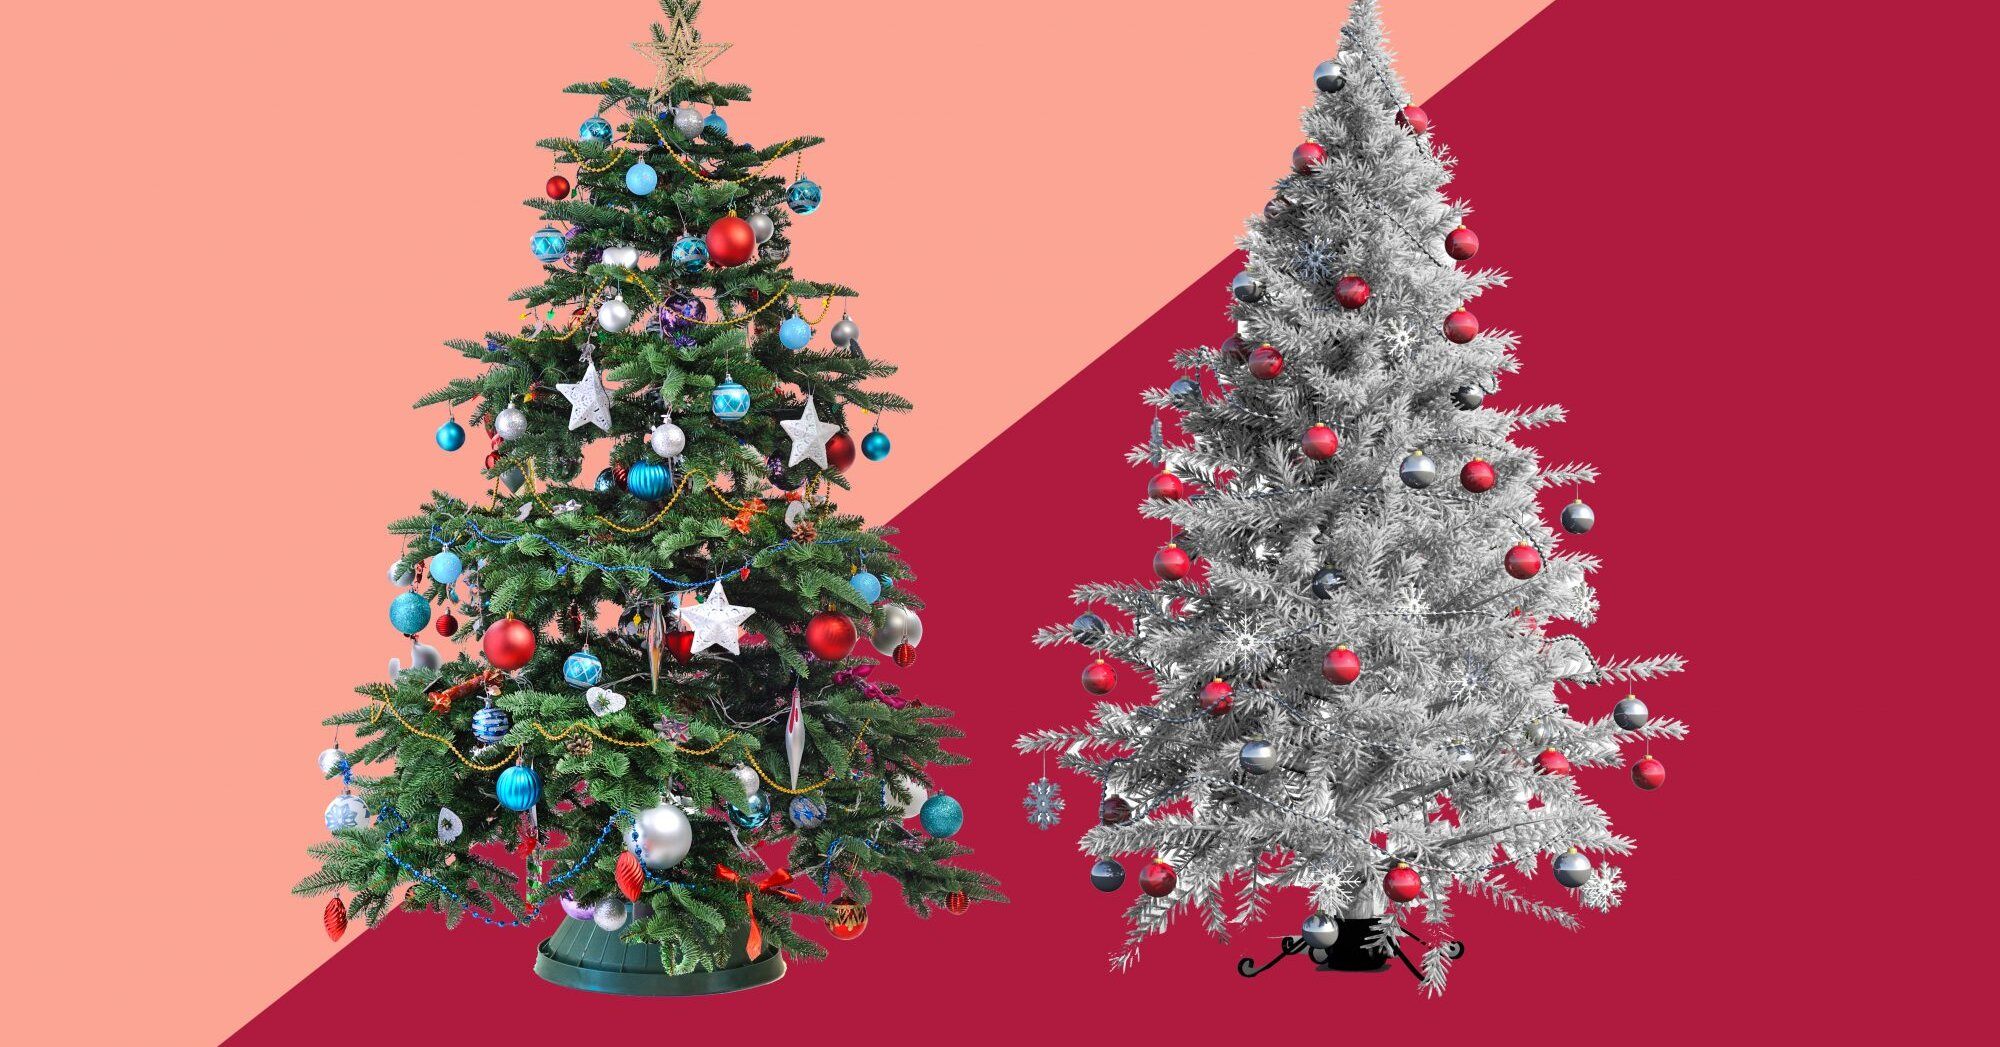 Pros And Cons Of A Real Christmas Tree Vs Artificial Christmas Tree Real Simple The national christmas tree is pictured after it was lit by. should you get a real or artificial christmas tree here s how to decide